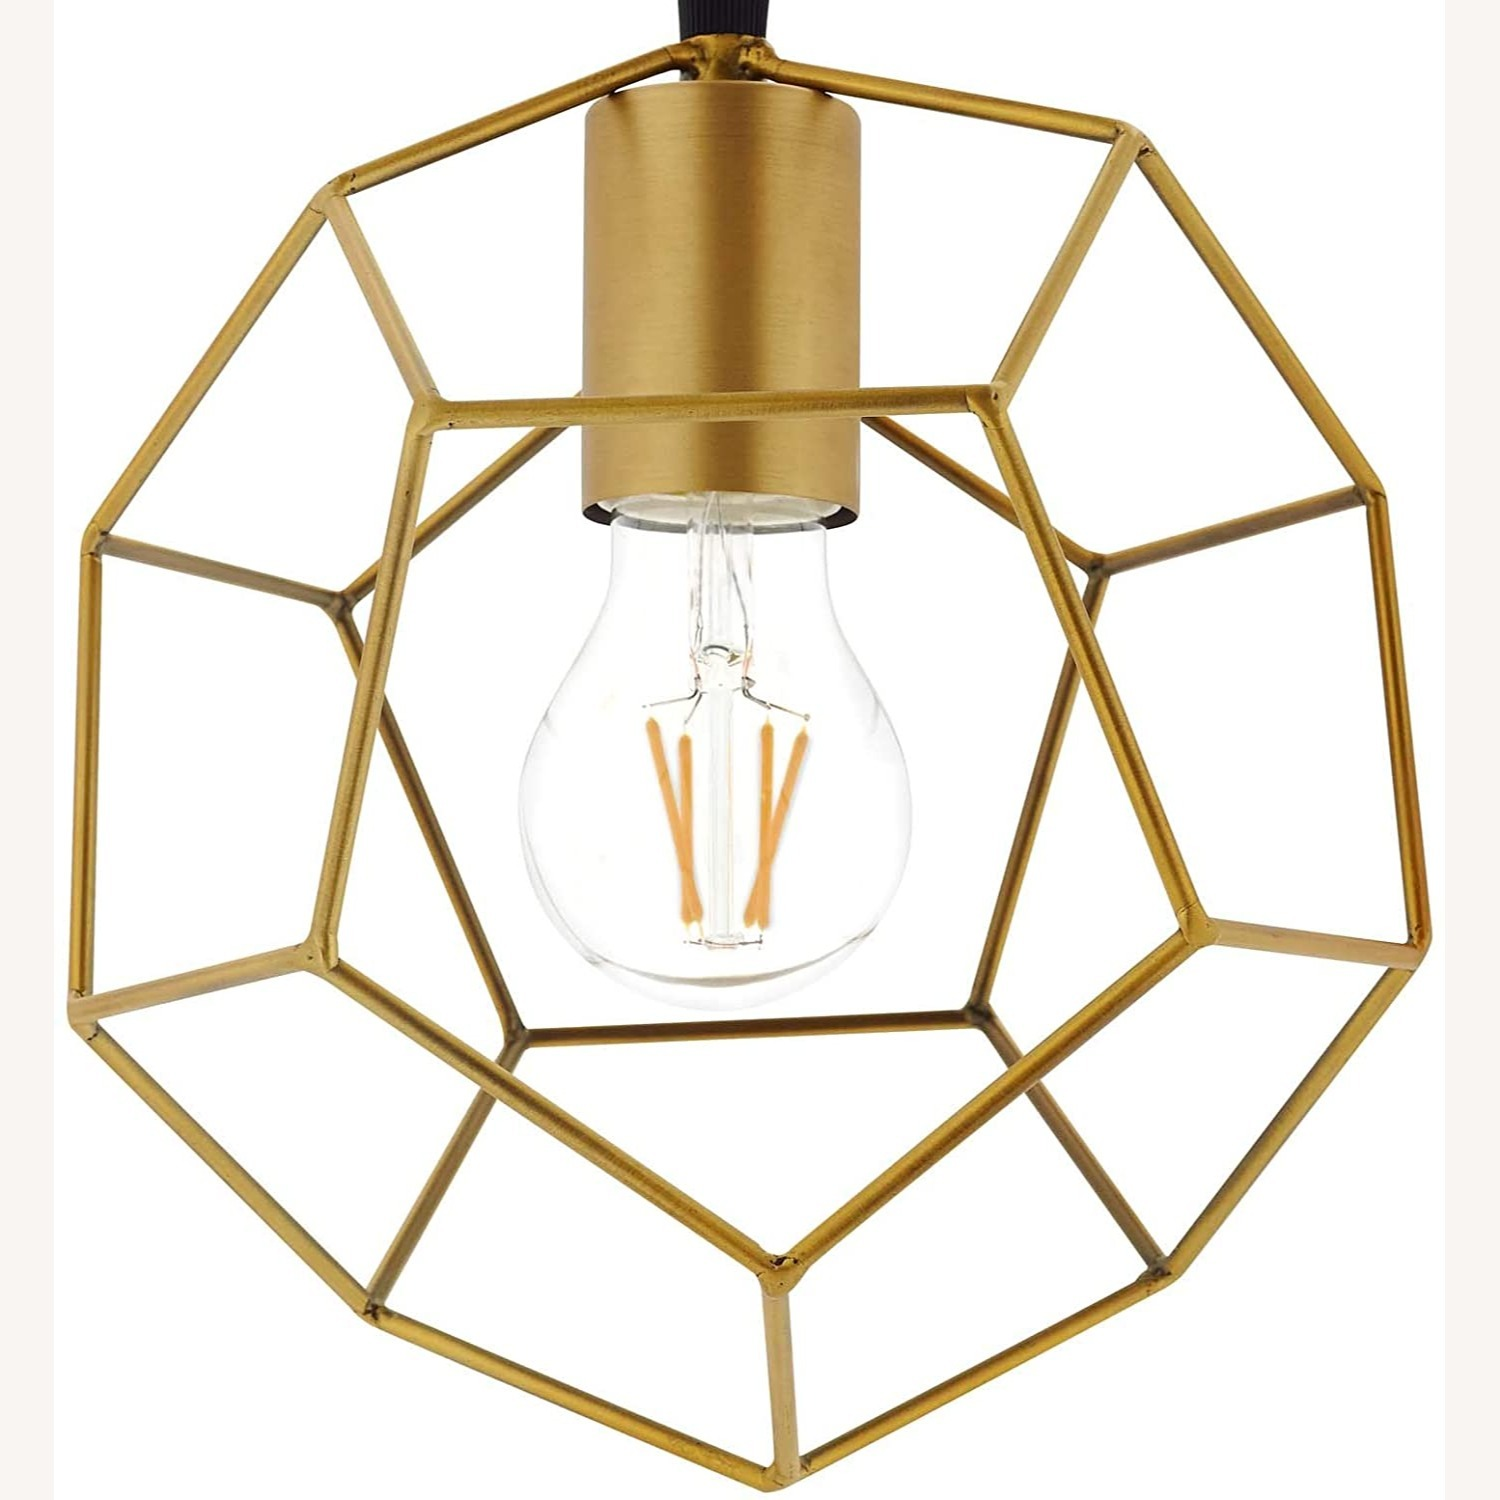 Contemporary Ceiling Lamp In Gold Metal Finish - image-1